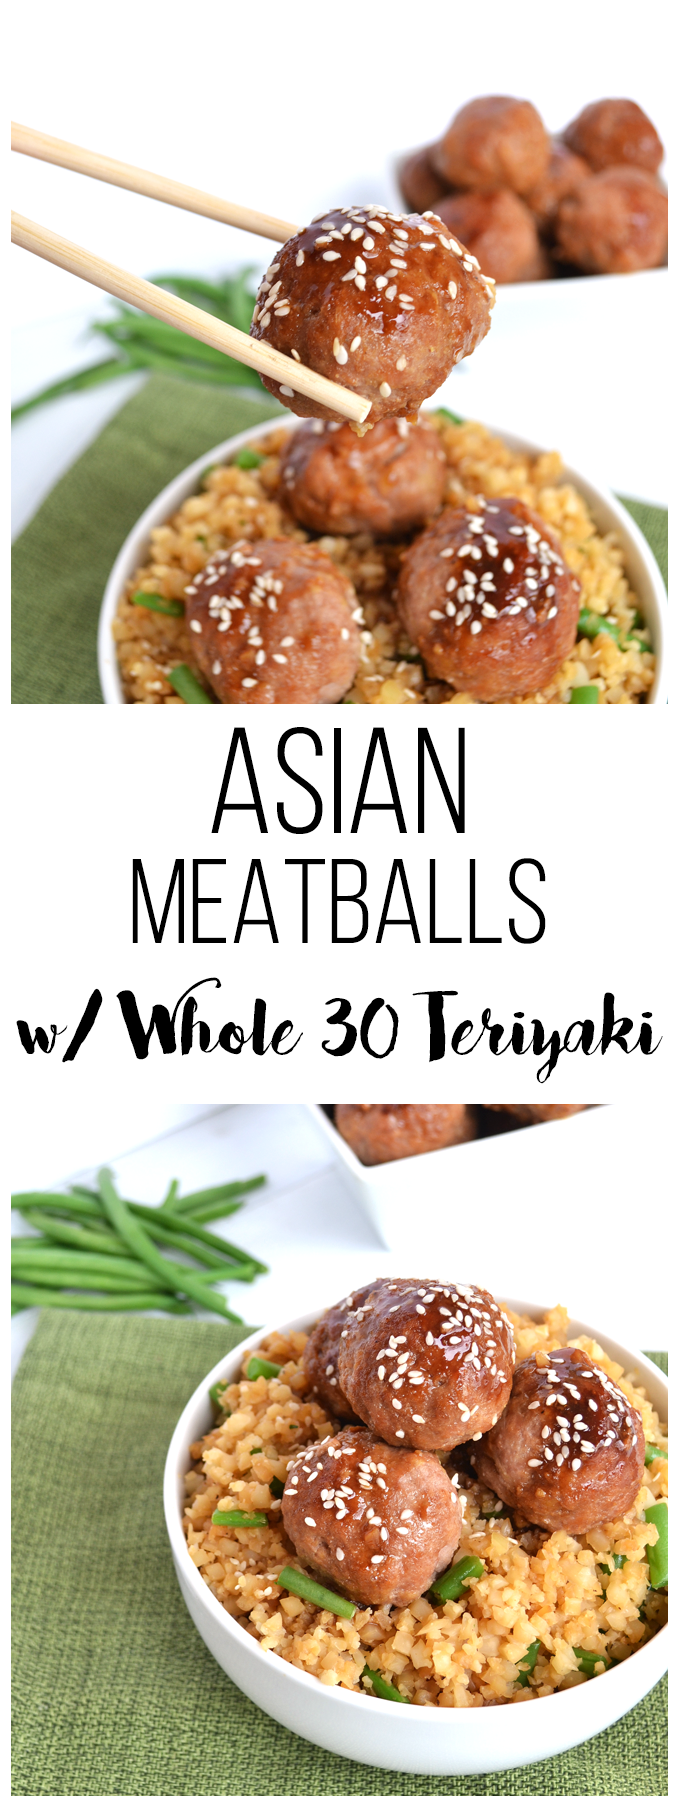 These Asian Turkey Meatballs are coated with a Whole 30 approved Teriyaki sauce that is sweetened with orange juice! These a super easy weeknight meal!